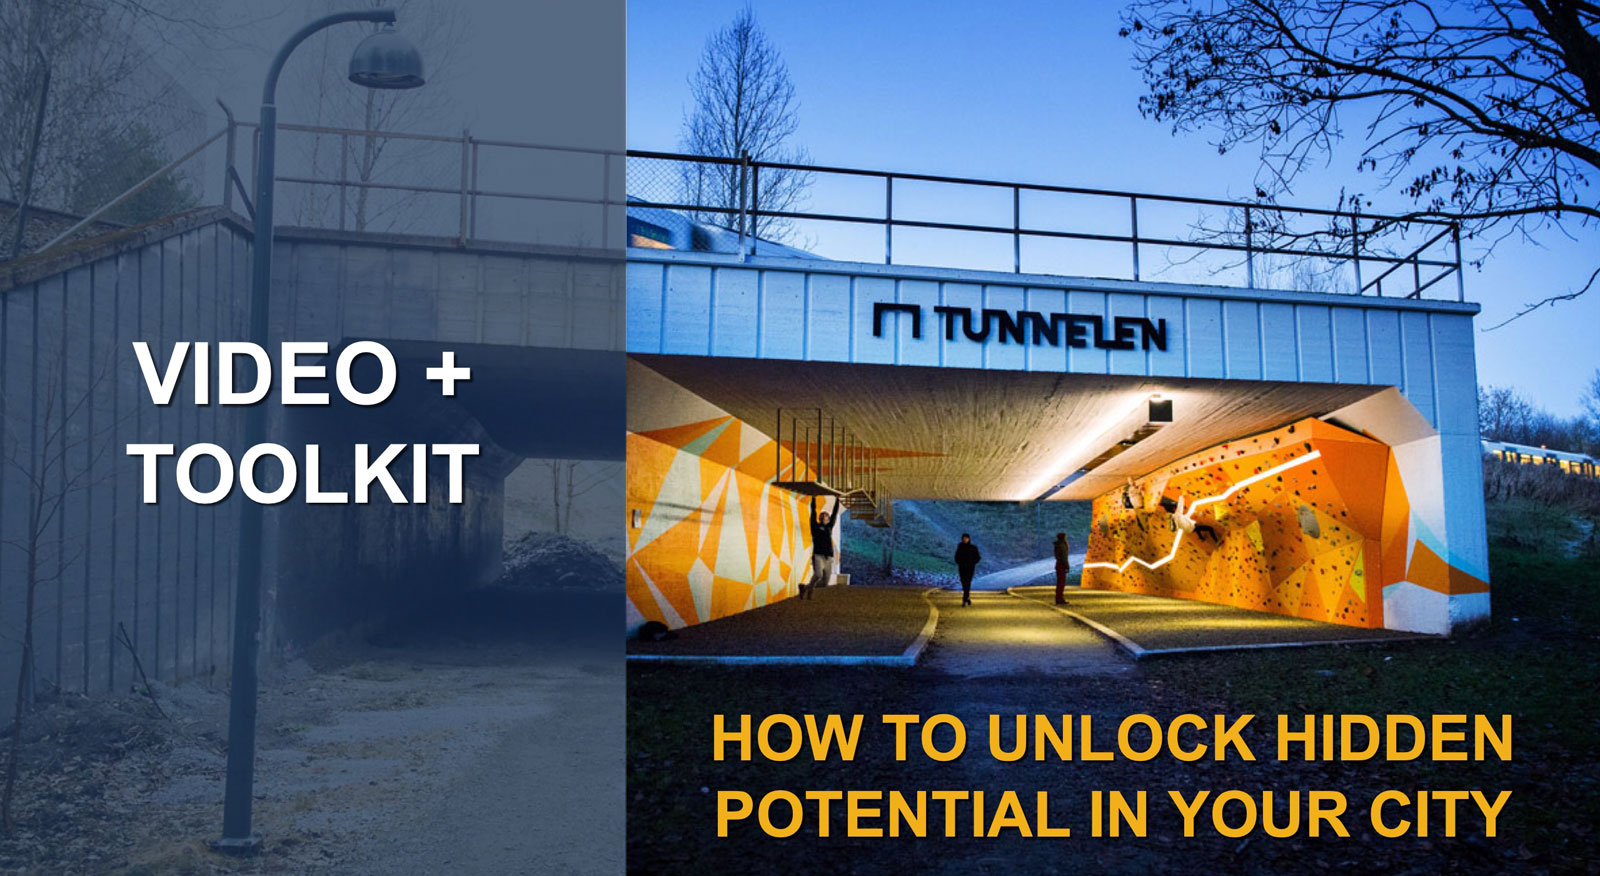 How to Unlock Hidden Potential in Your City: Video Tutorial and Toolkit